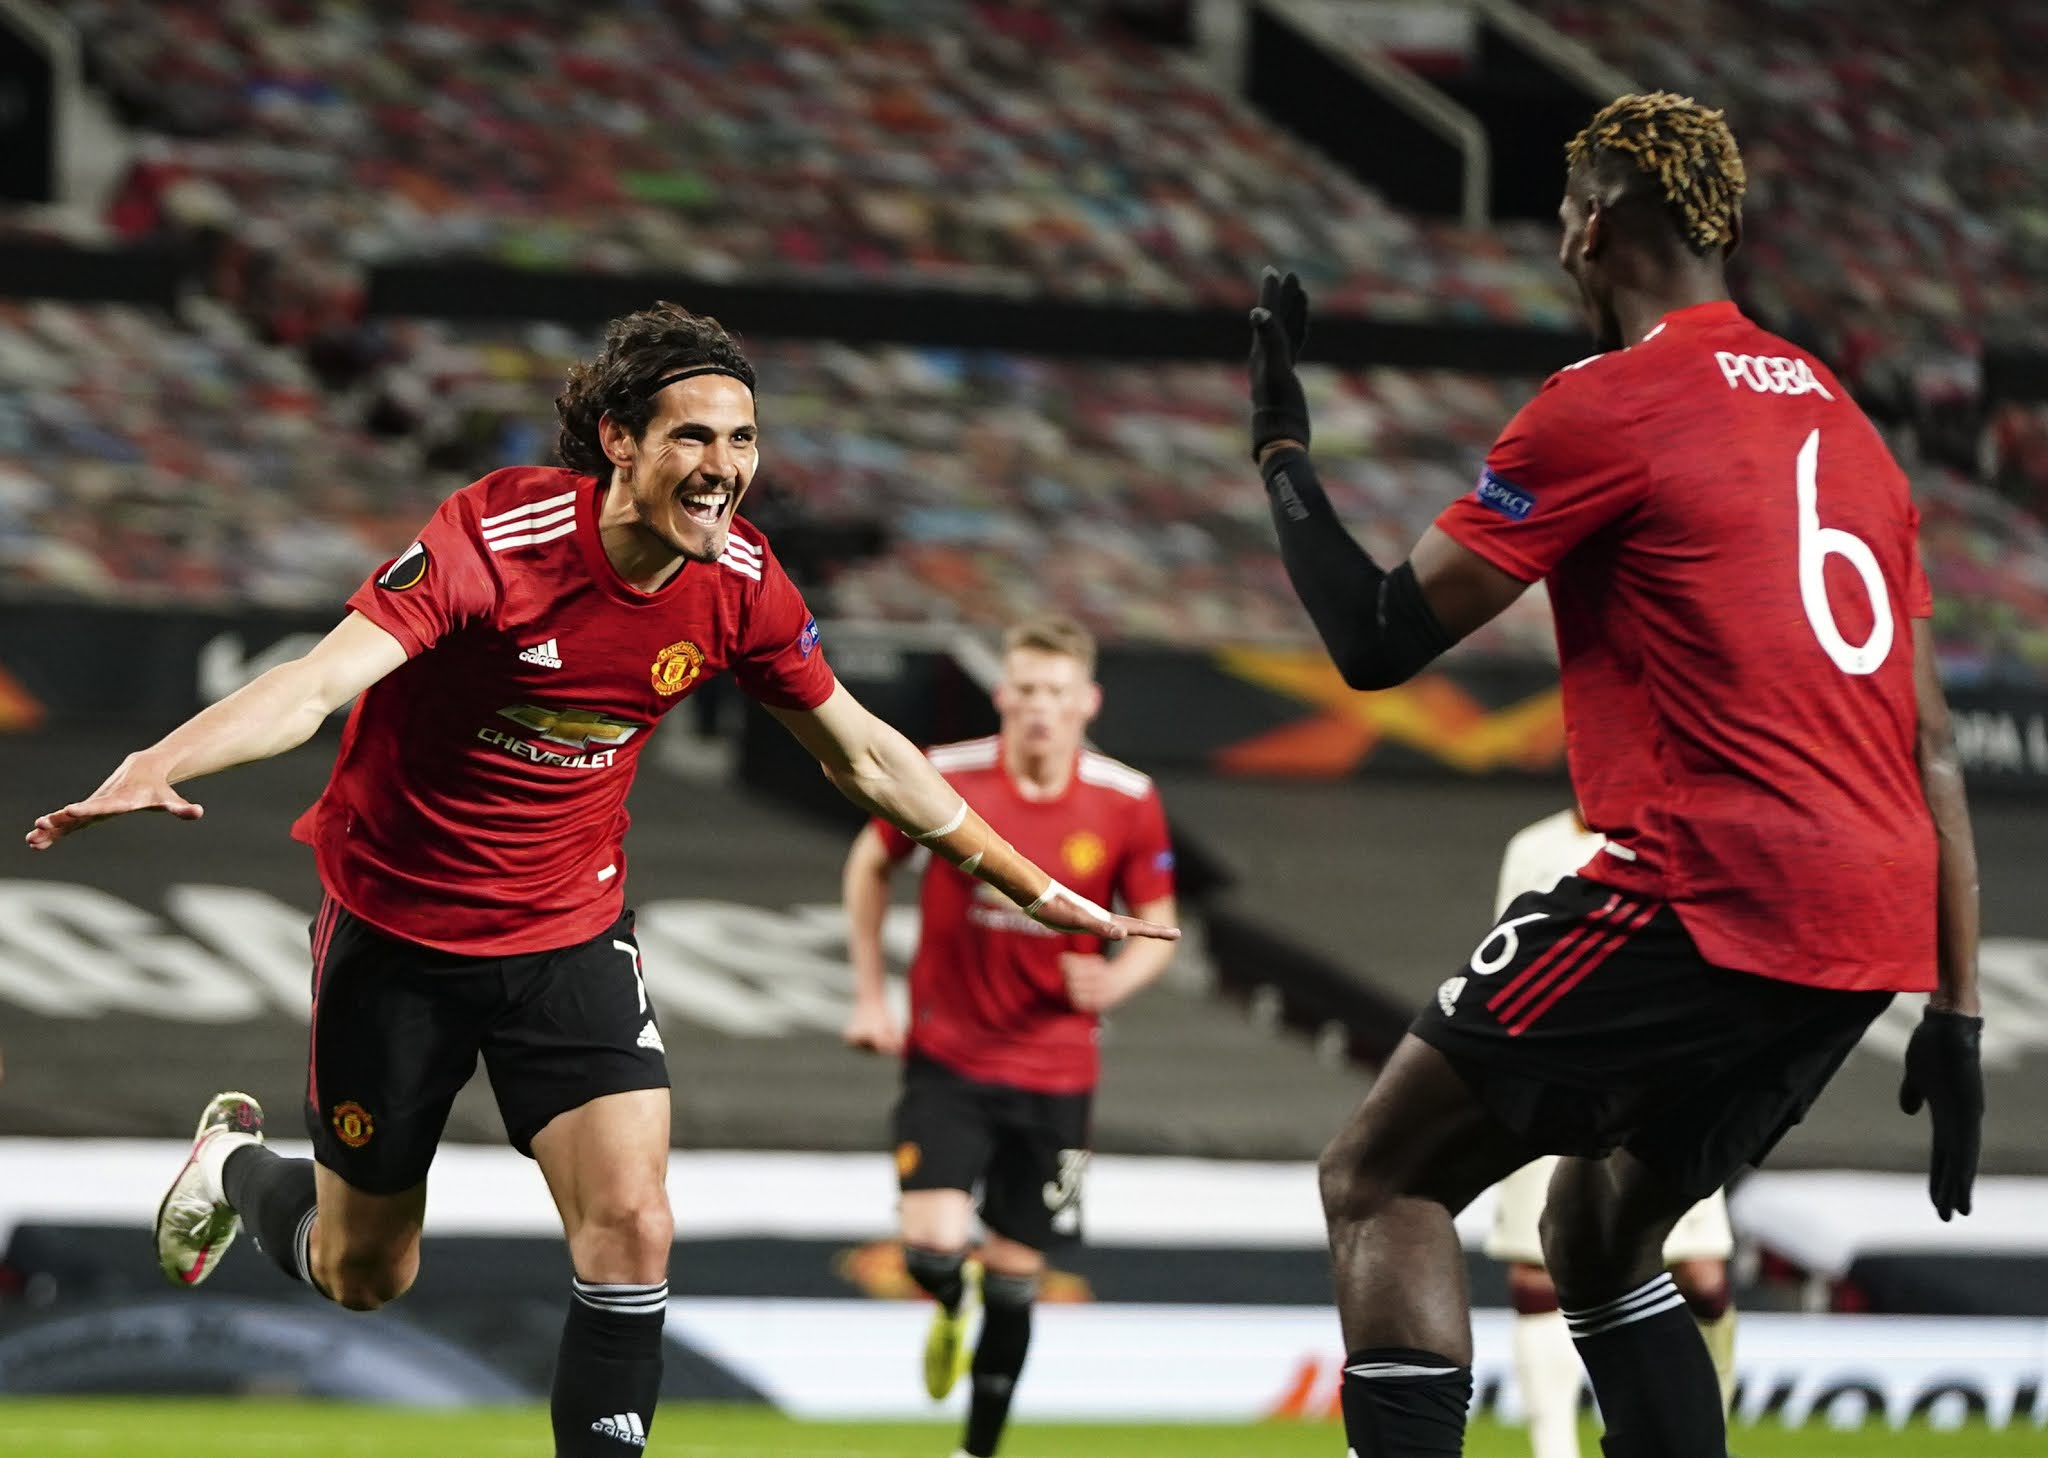 Manchester United come into the final as much-fancied favorites